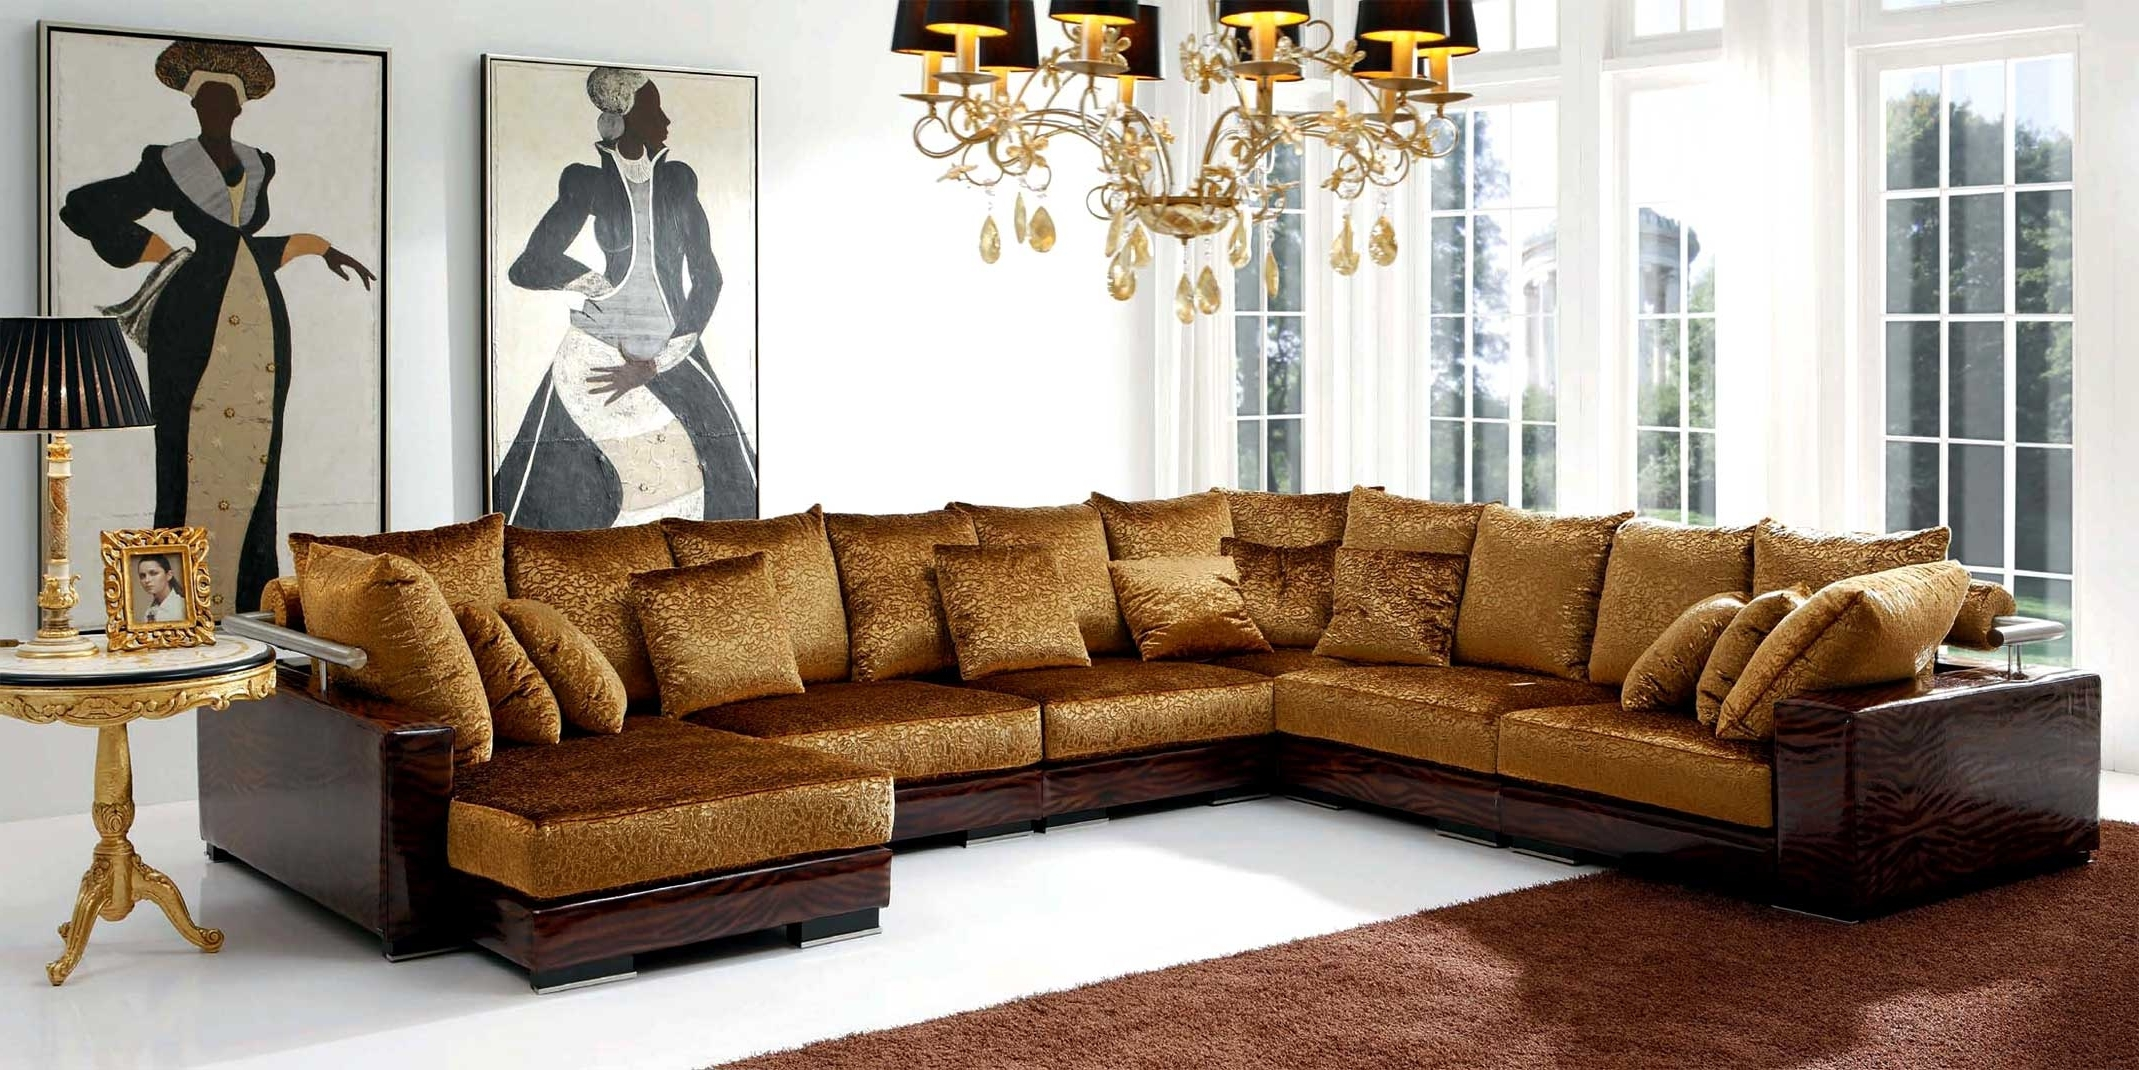 2018 Gold Sectional Sofas Pertaining To Luxury Furniture Brands (View 4 of 20)